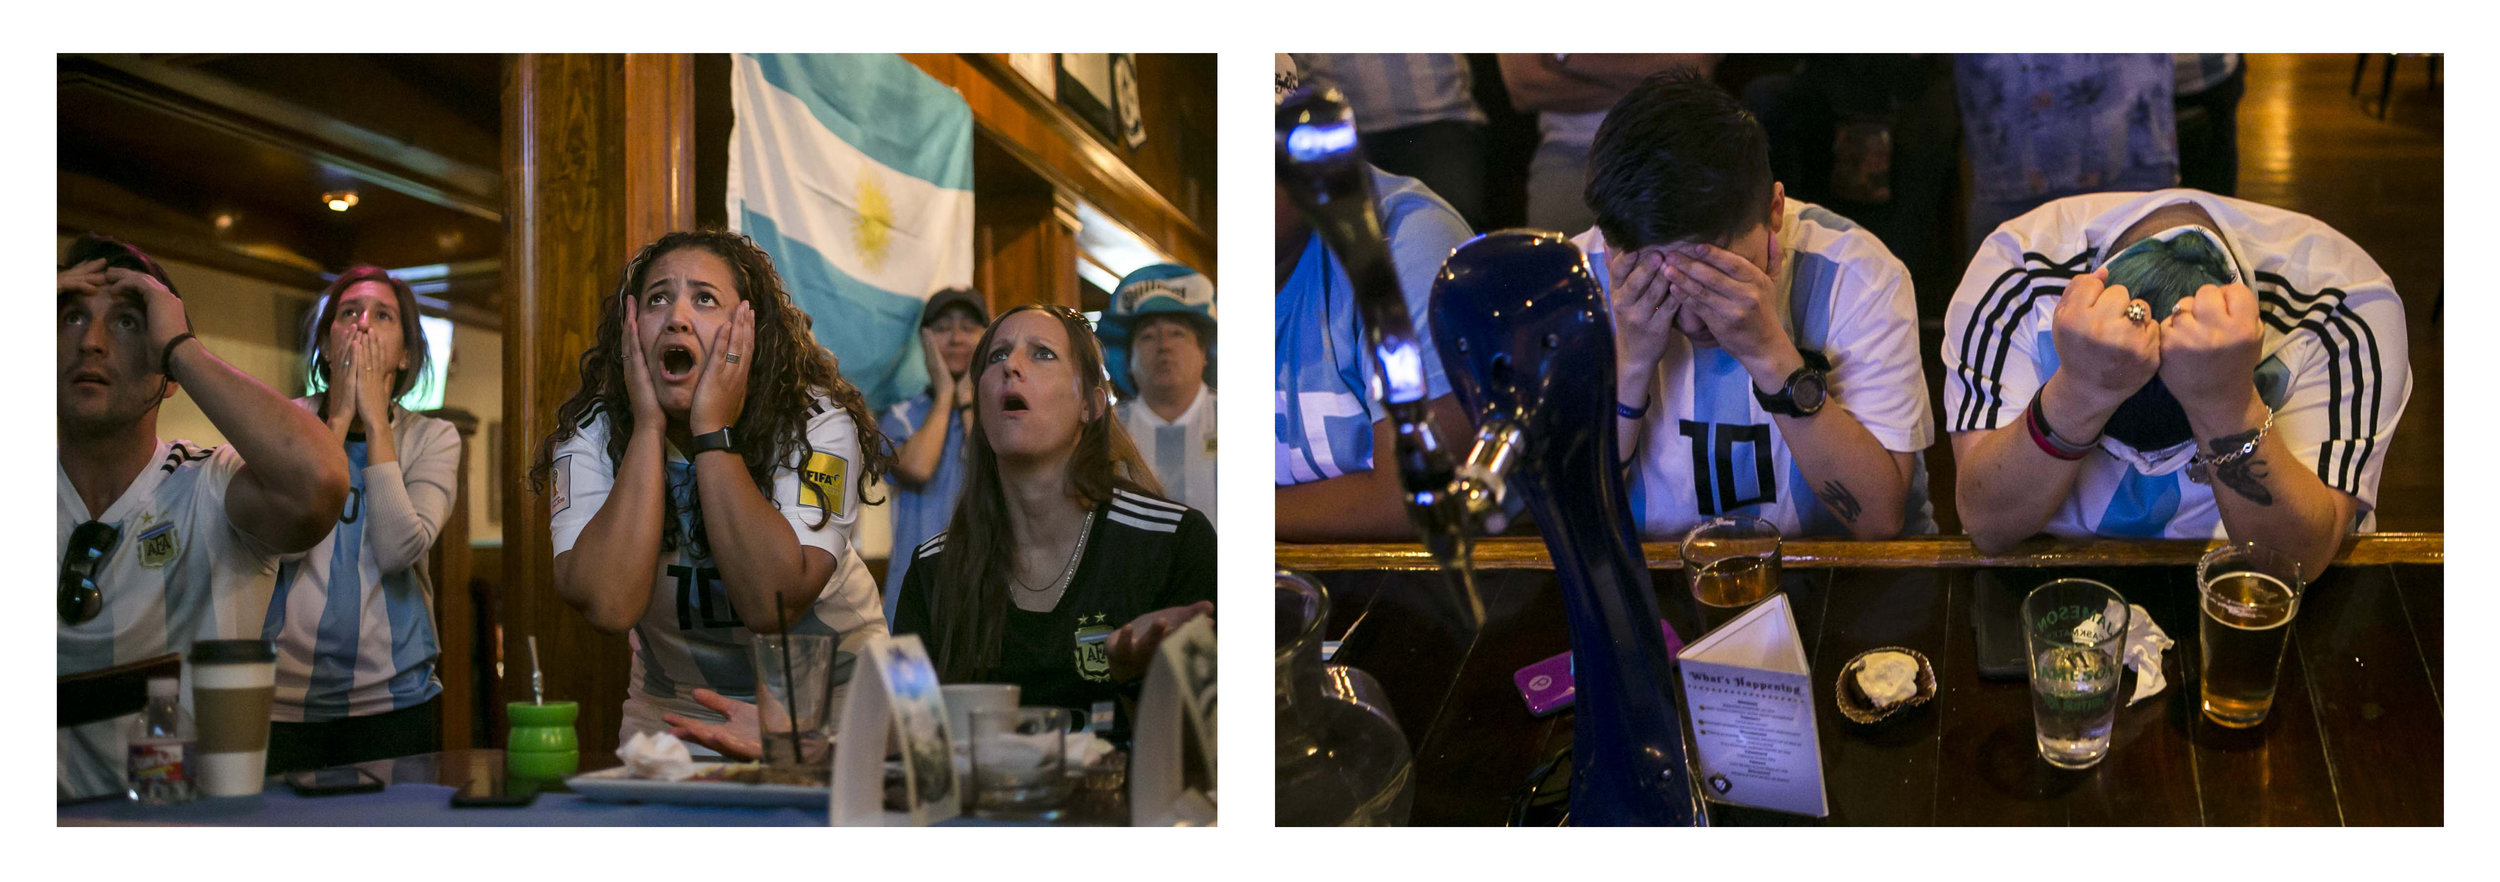 World Cup opening game Argentina vs. Iceland watch party in San Antonio, Texas. June 2018.